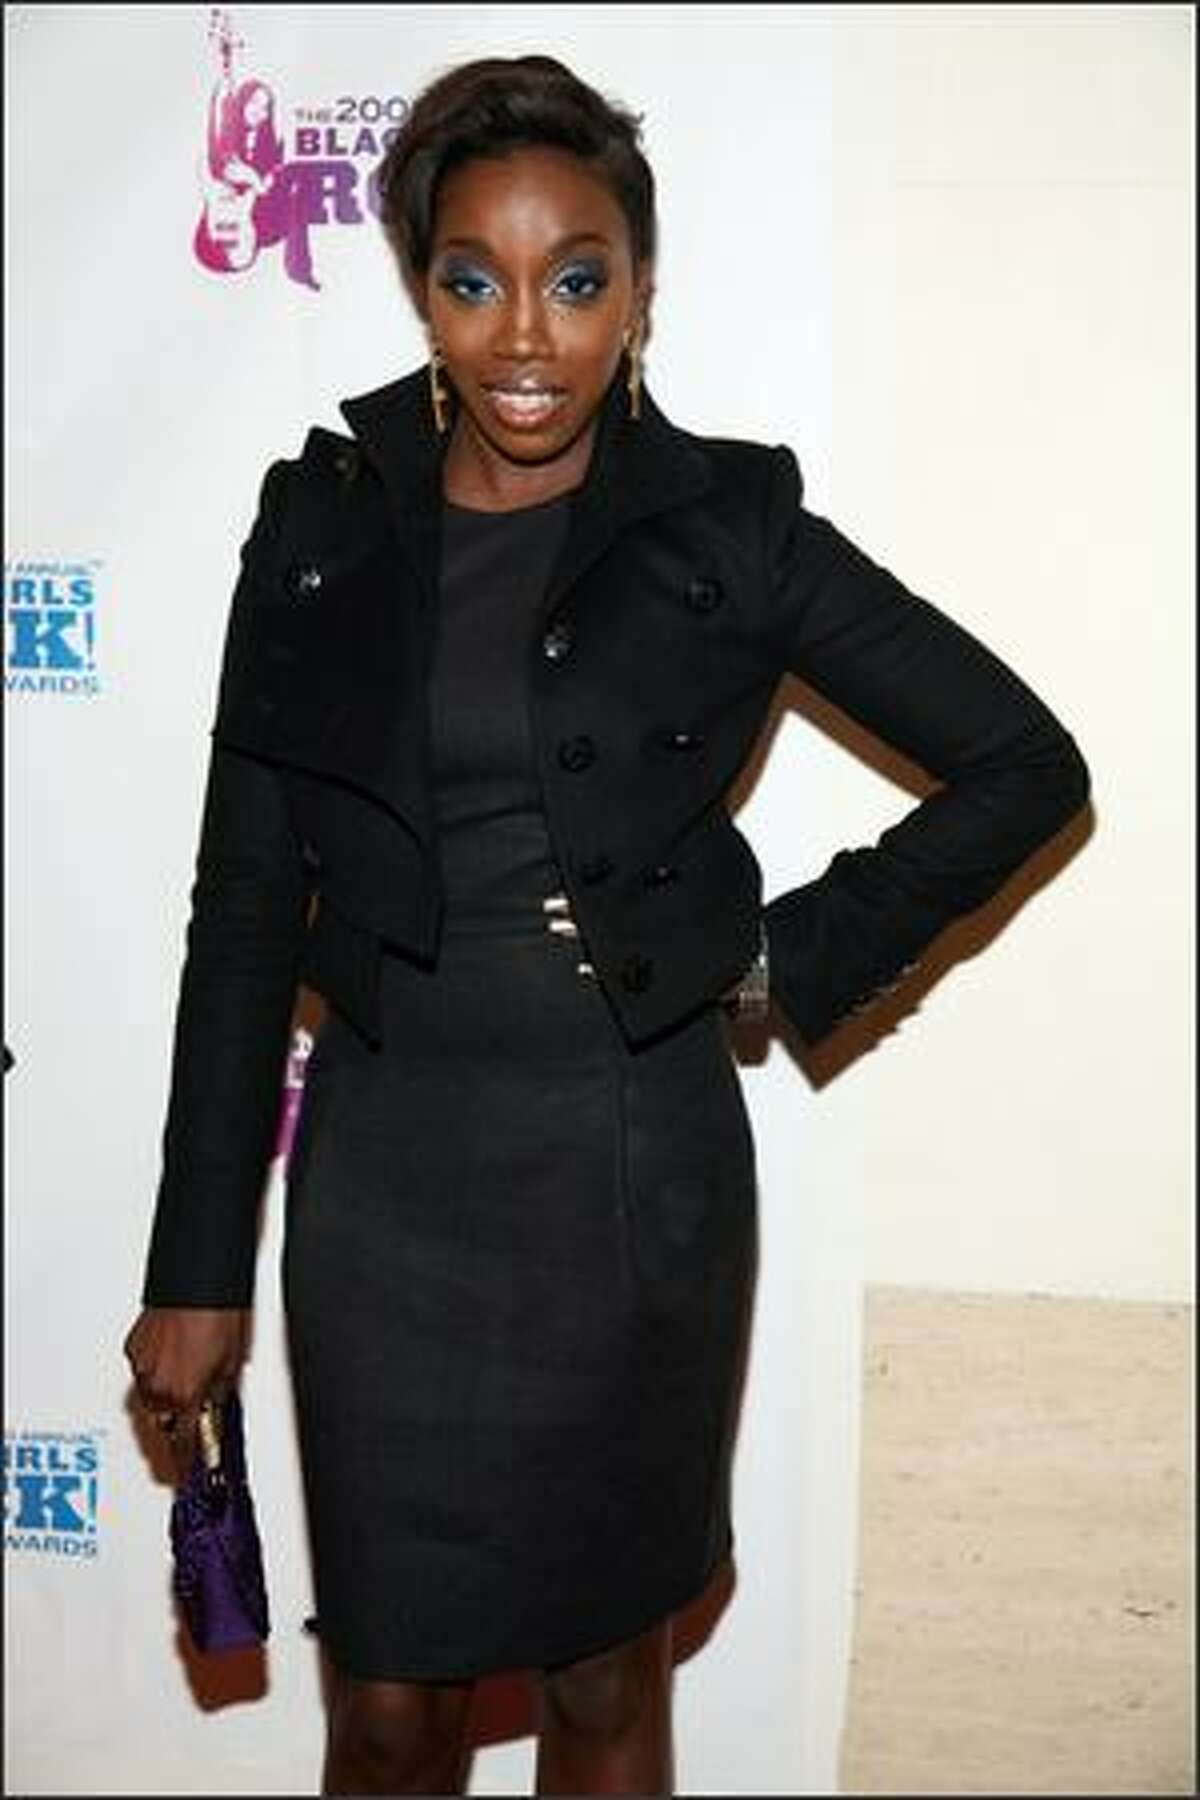 Singer Estelle attends the 3rd Annual Black Girls Rock! Awards at Jazz at Lincoln Center on Sunday in New York City.